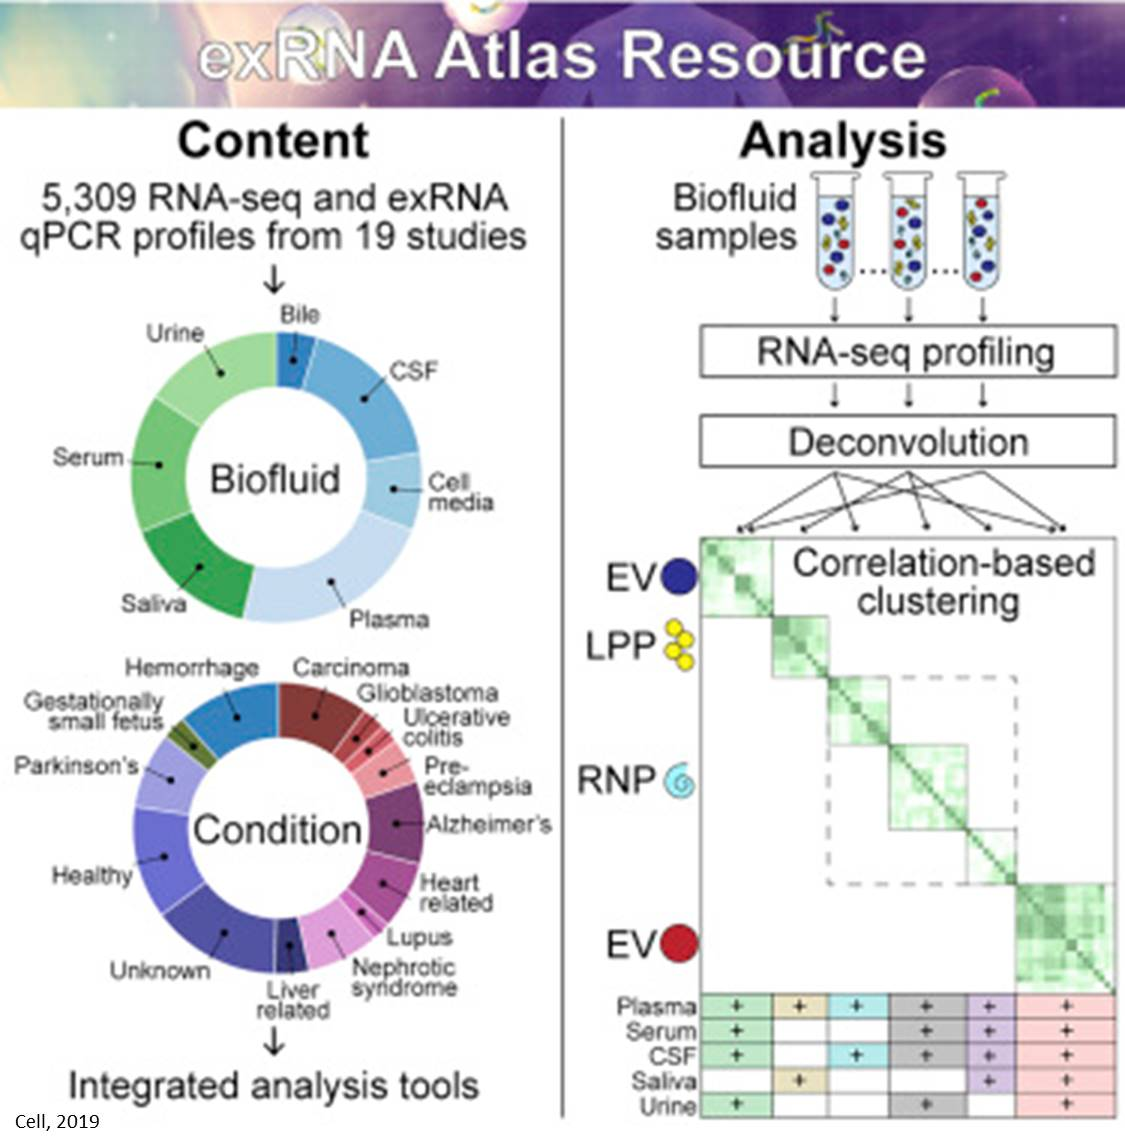 Computational tool to analyze new form of cell-cell communication molecule, exRNA